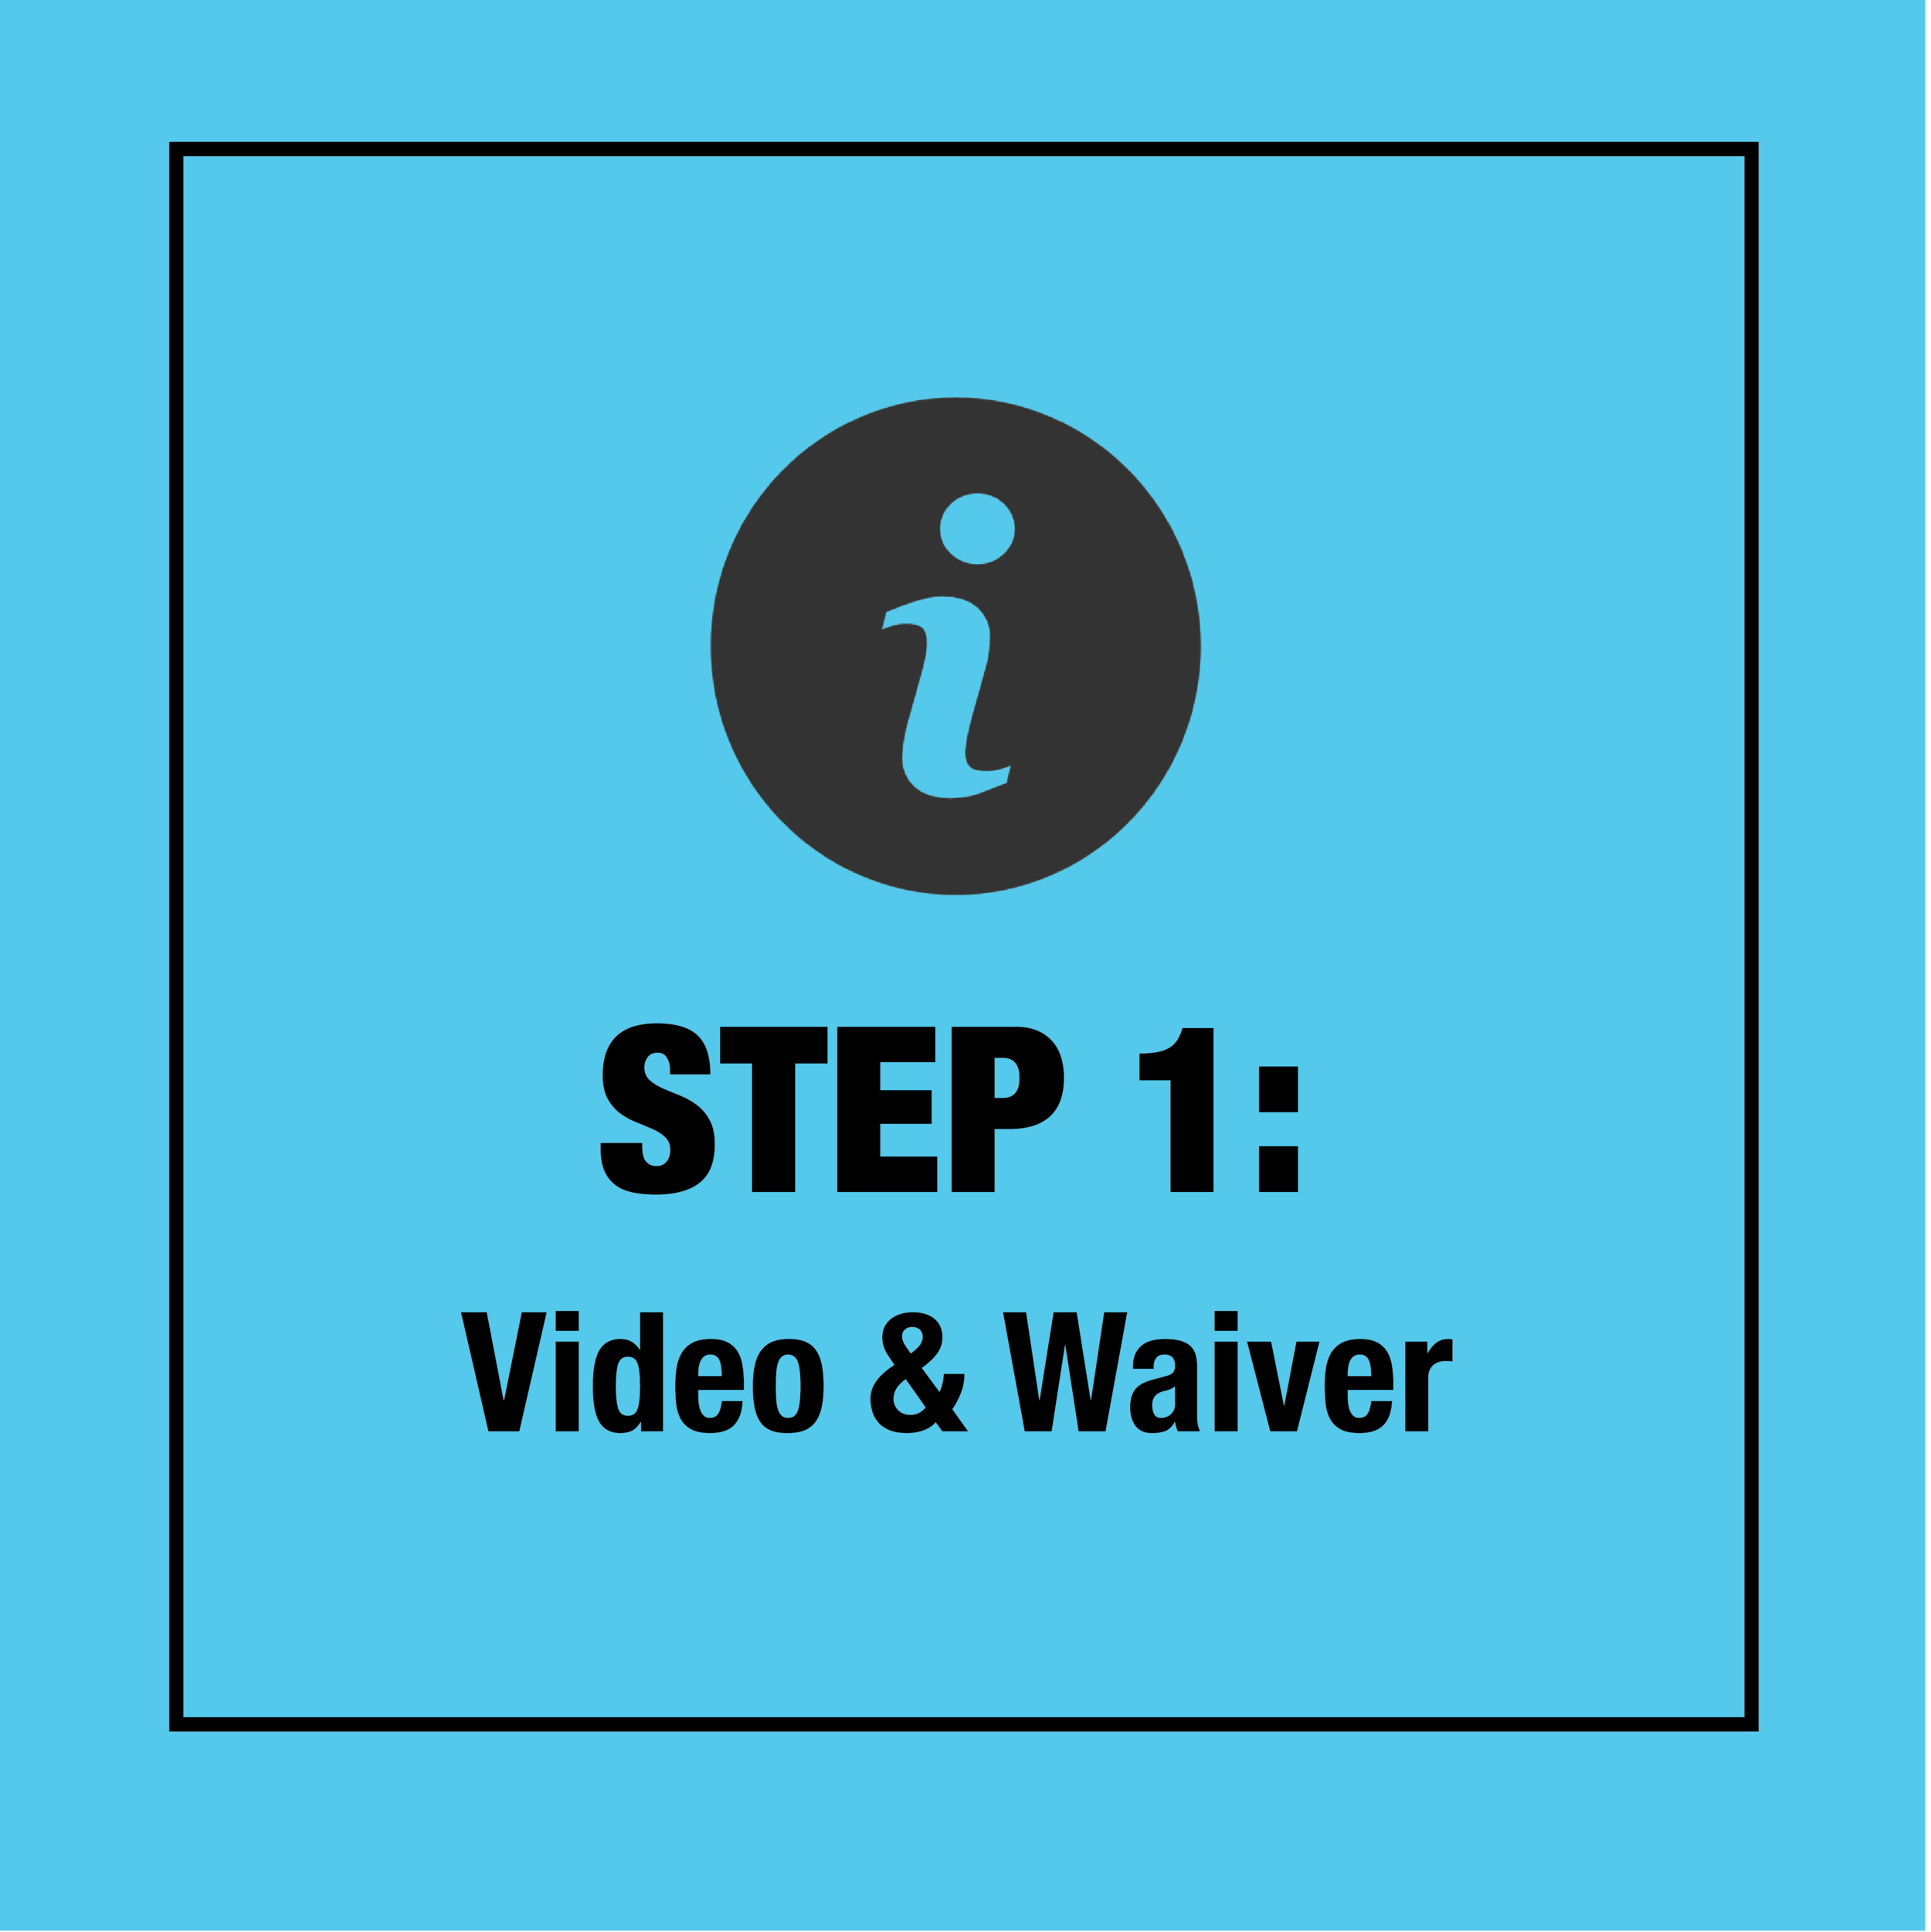 We'll have you watch our intro video and sign the waiver.